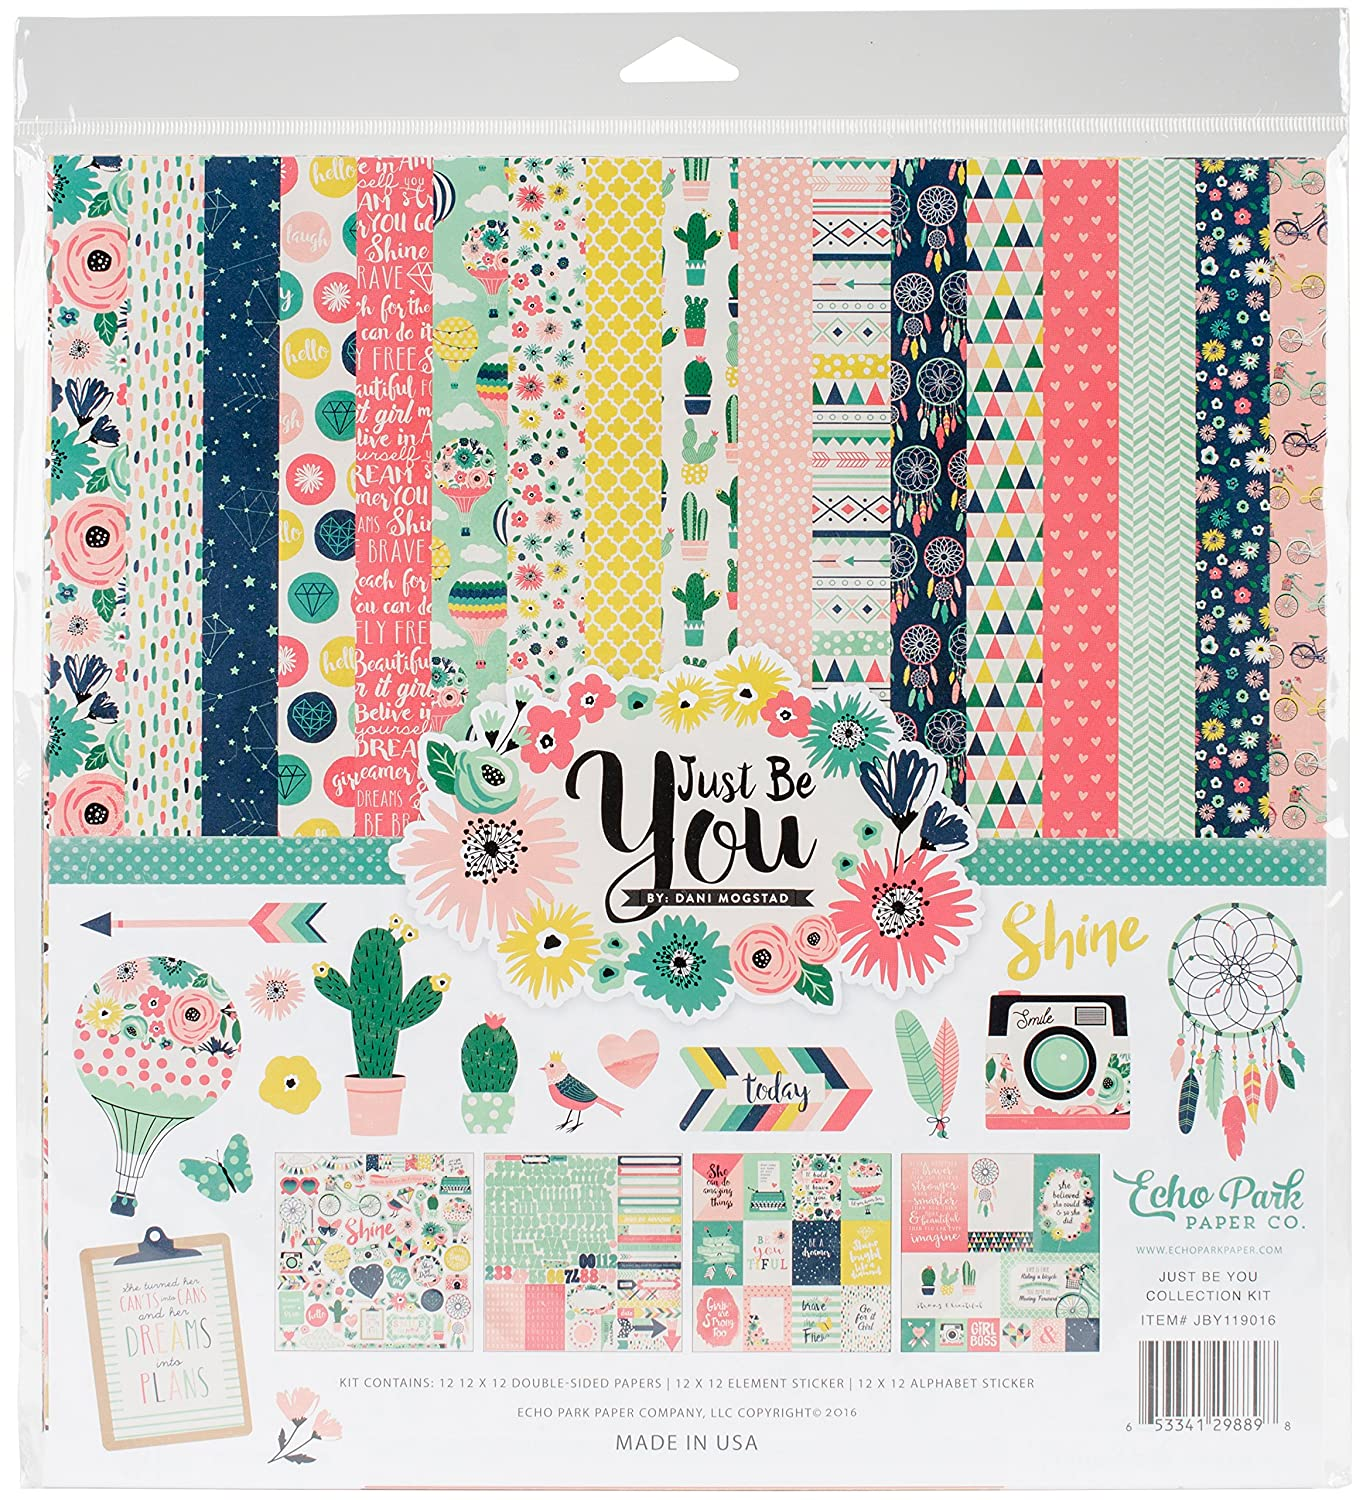 Echo Park Paper JBY119016 Collection Kit, Multi-Colour, 12 x 12-Inch